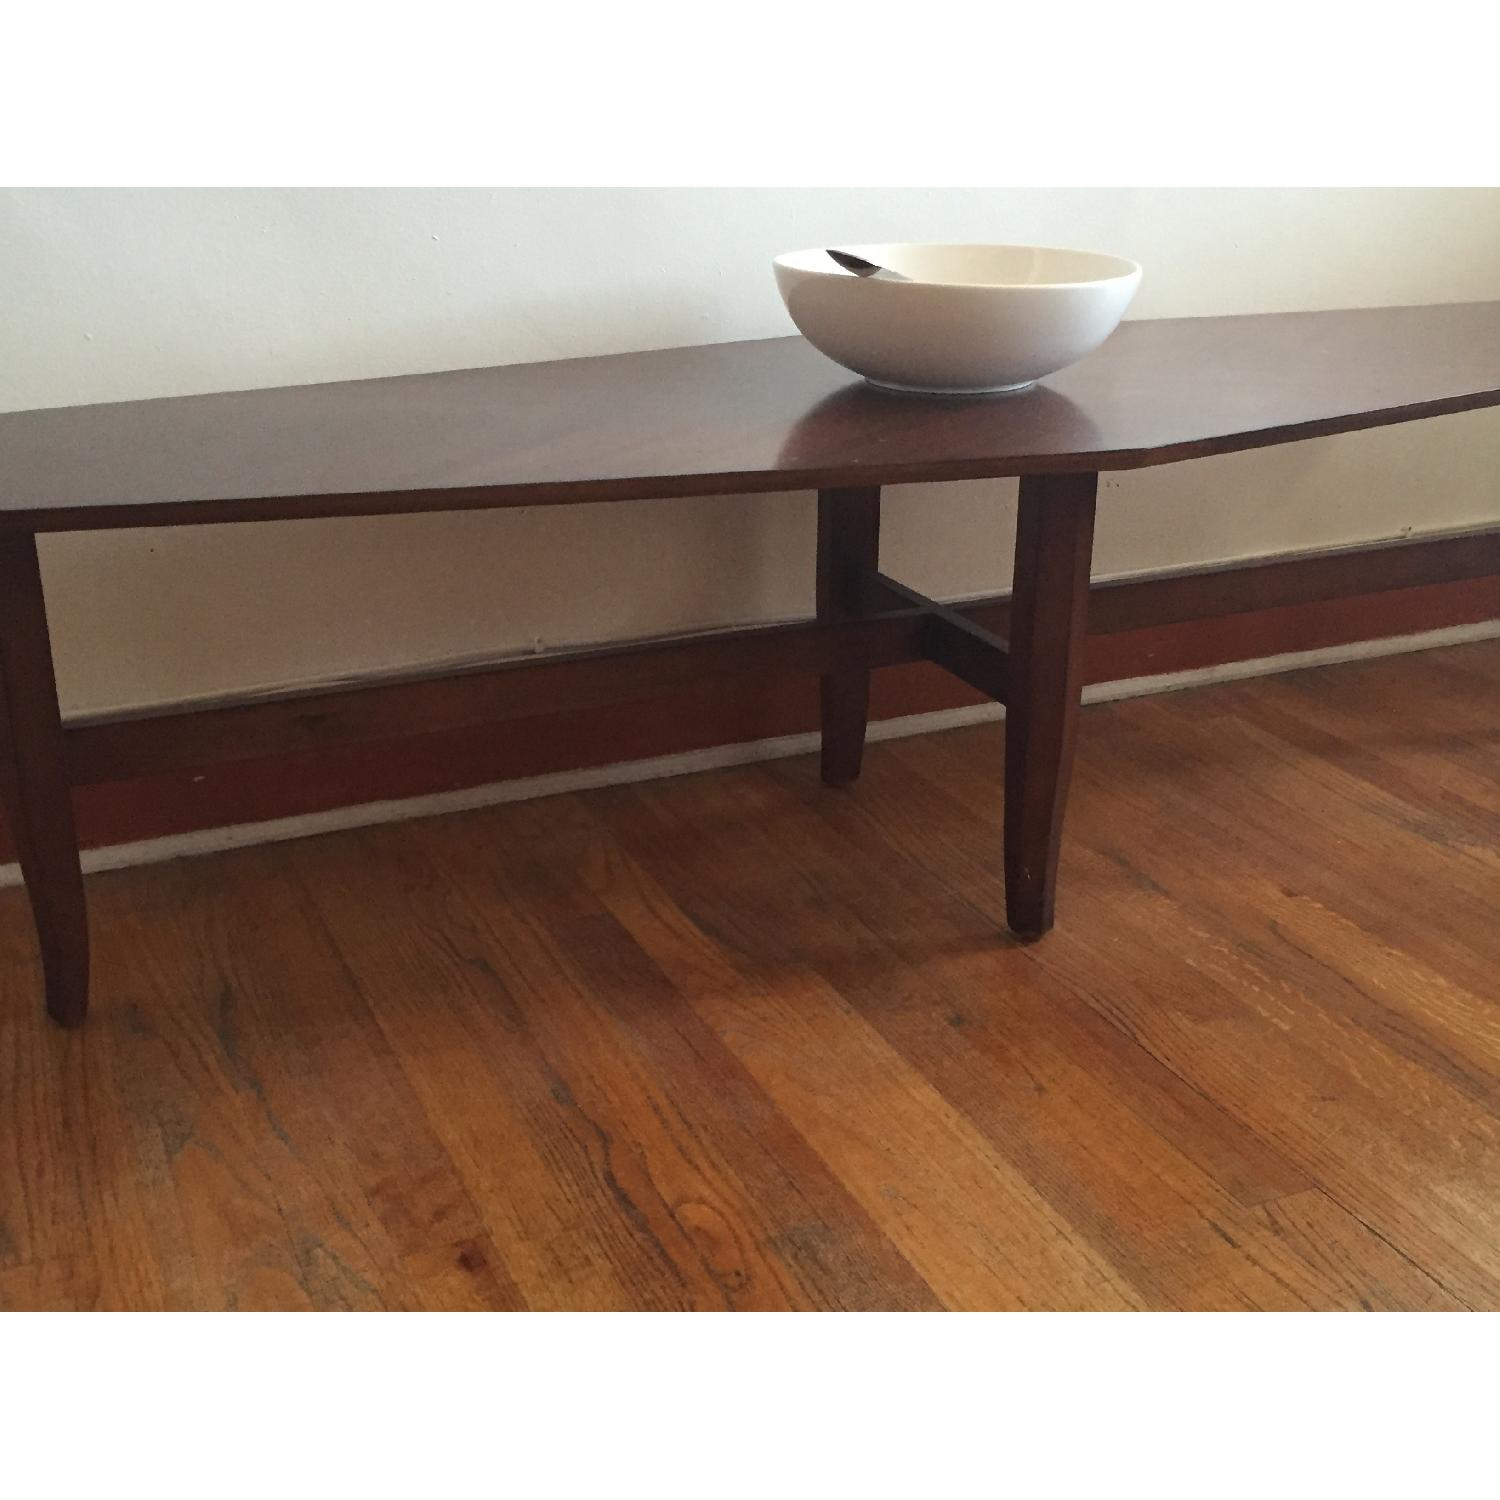 Mitchell Gold + Bob Williams Surfboard Coffee Table - image-3